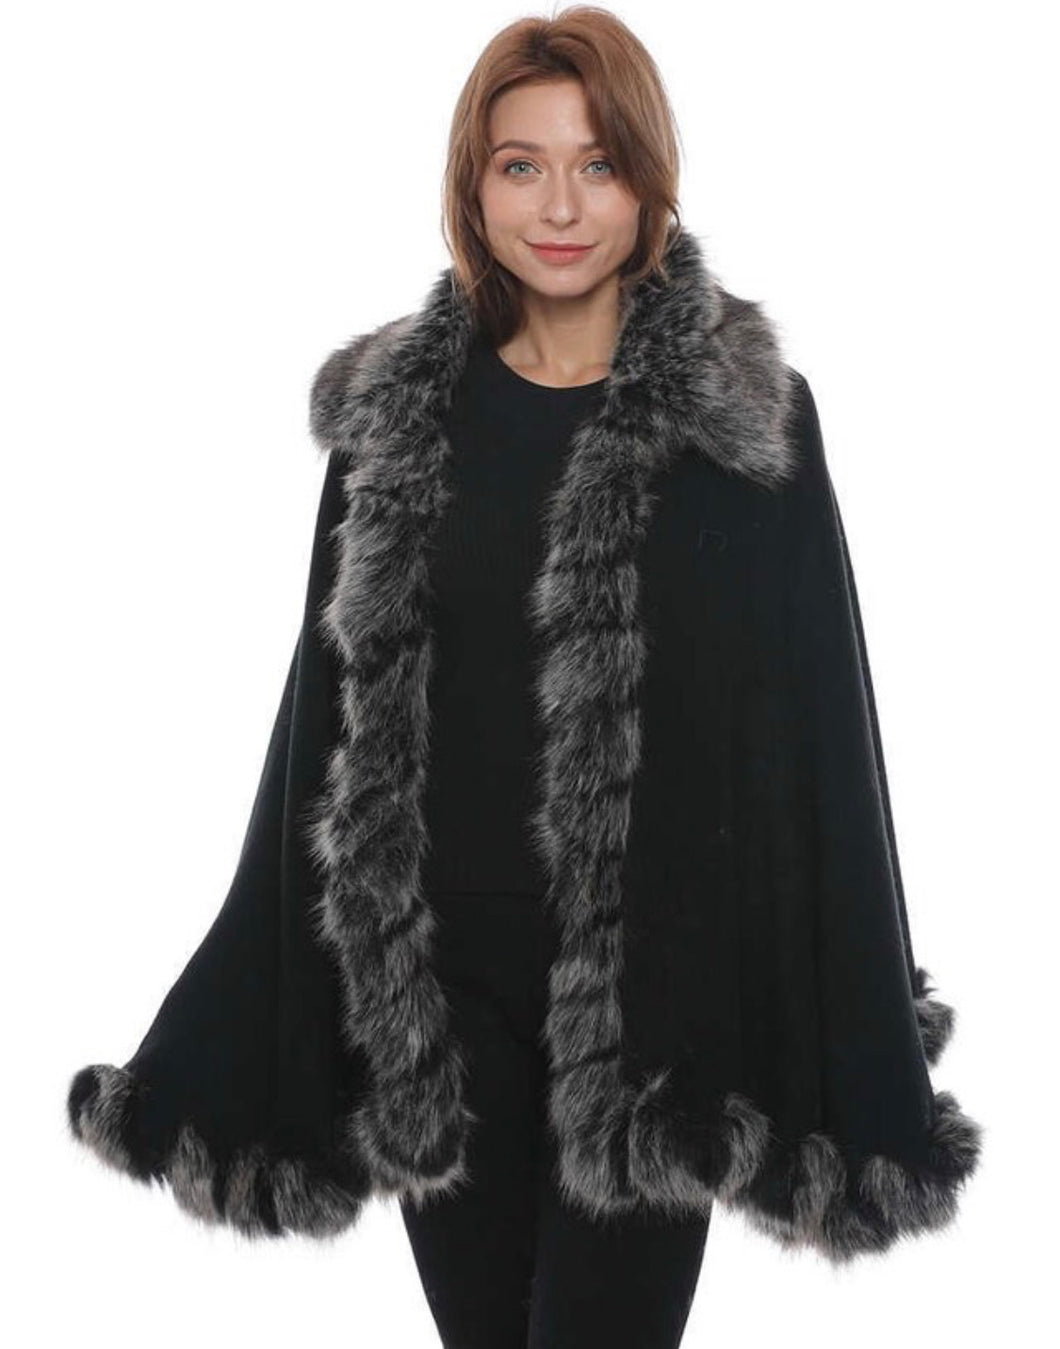 Black cape with grey collar and trim